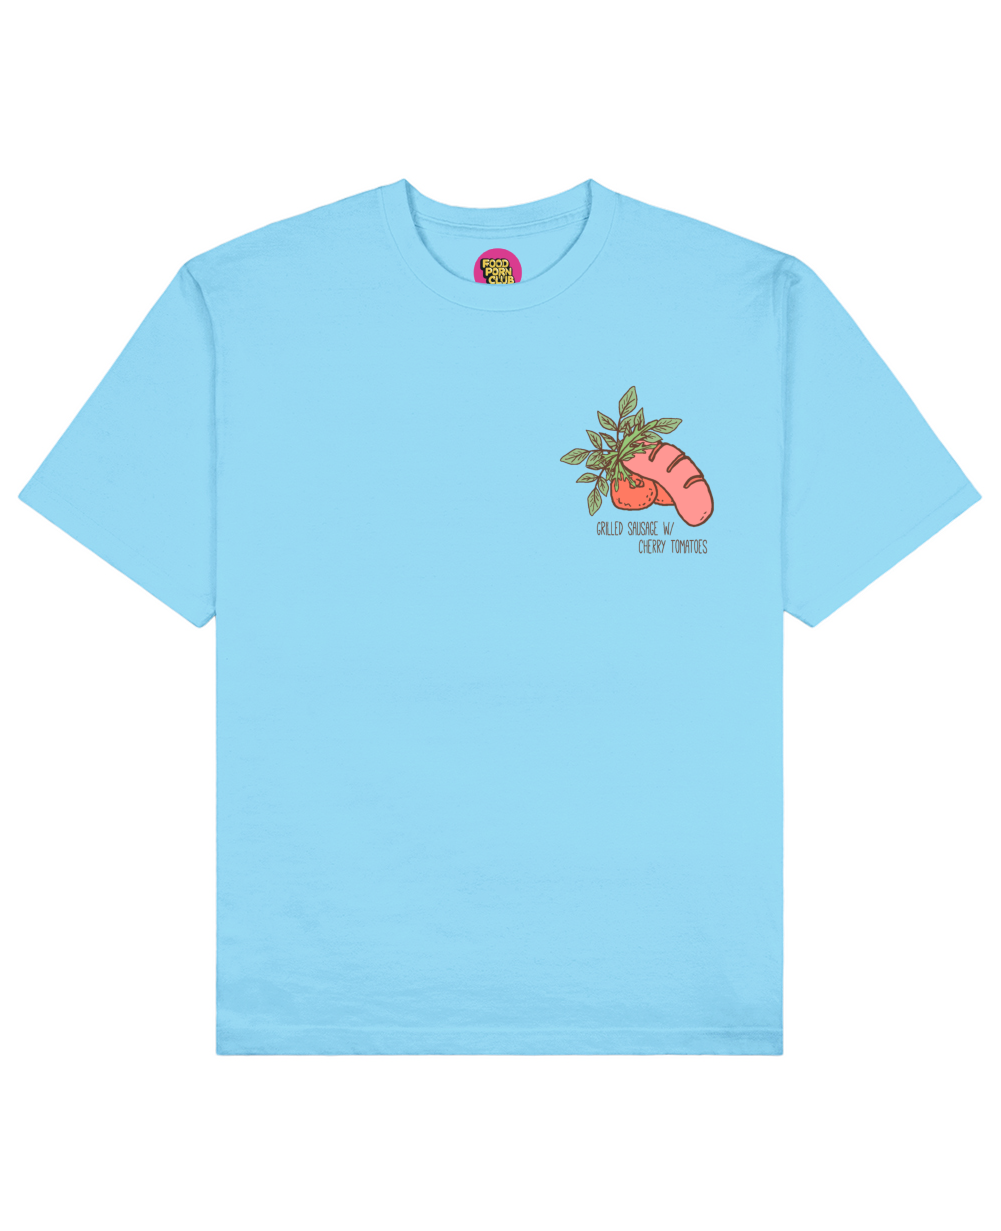 Grilled Sausage Print T-Shirt in Light Blue - T-Shirts - FOOD PORN CLUB - BRANMA